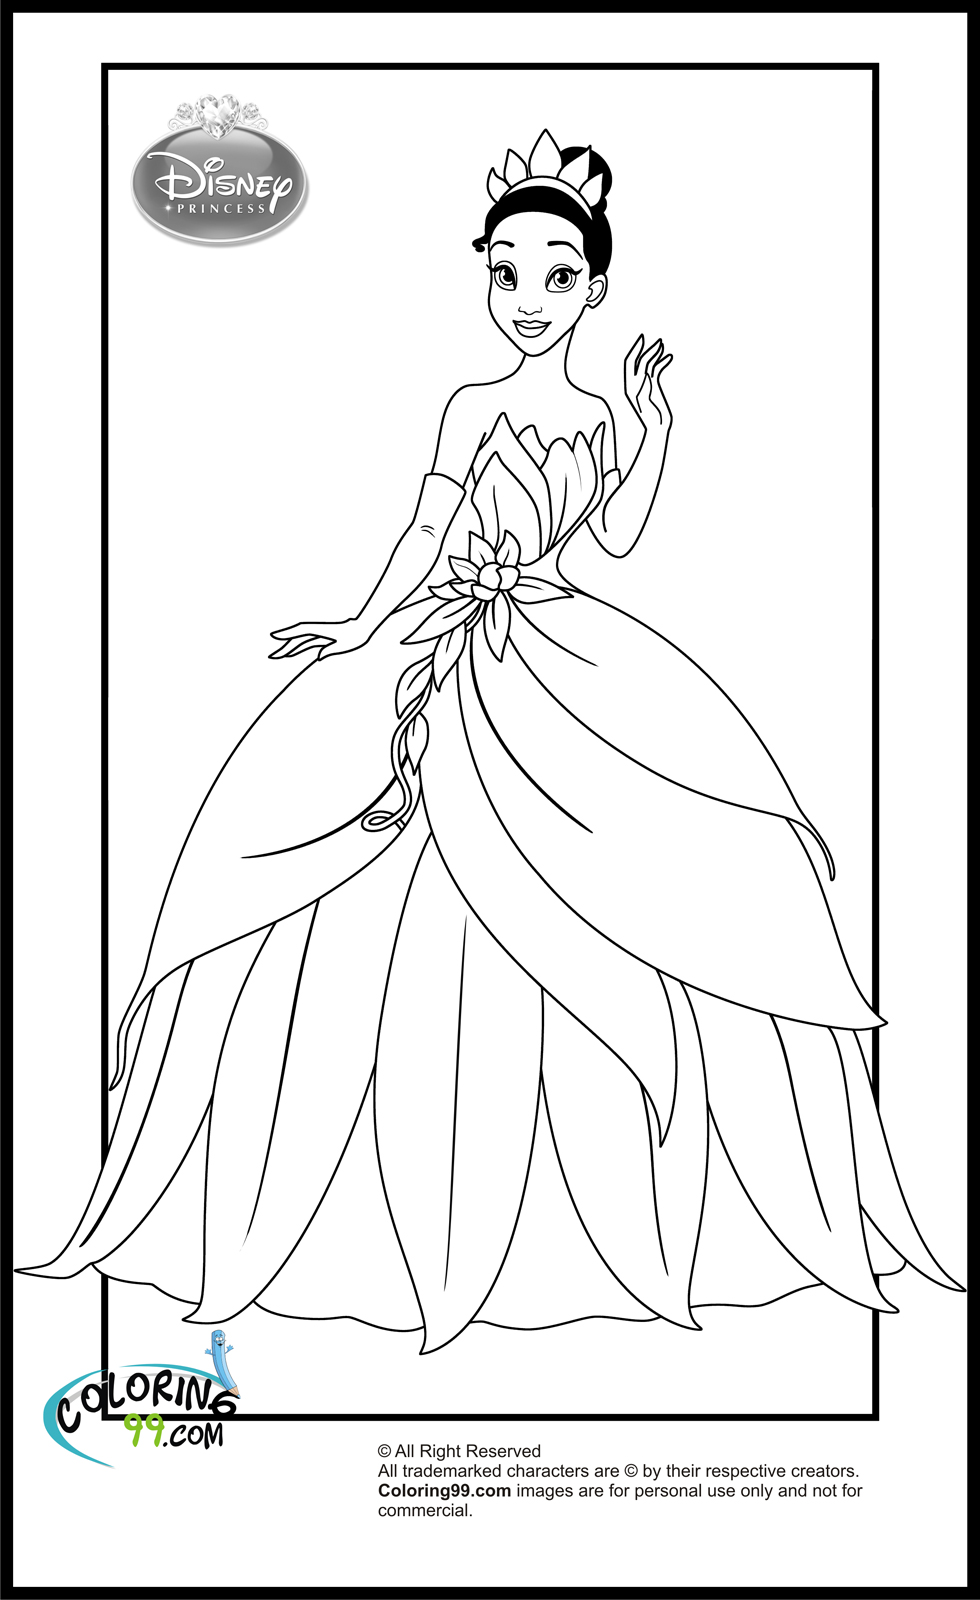 Monster image with disney princess printable coloring pages